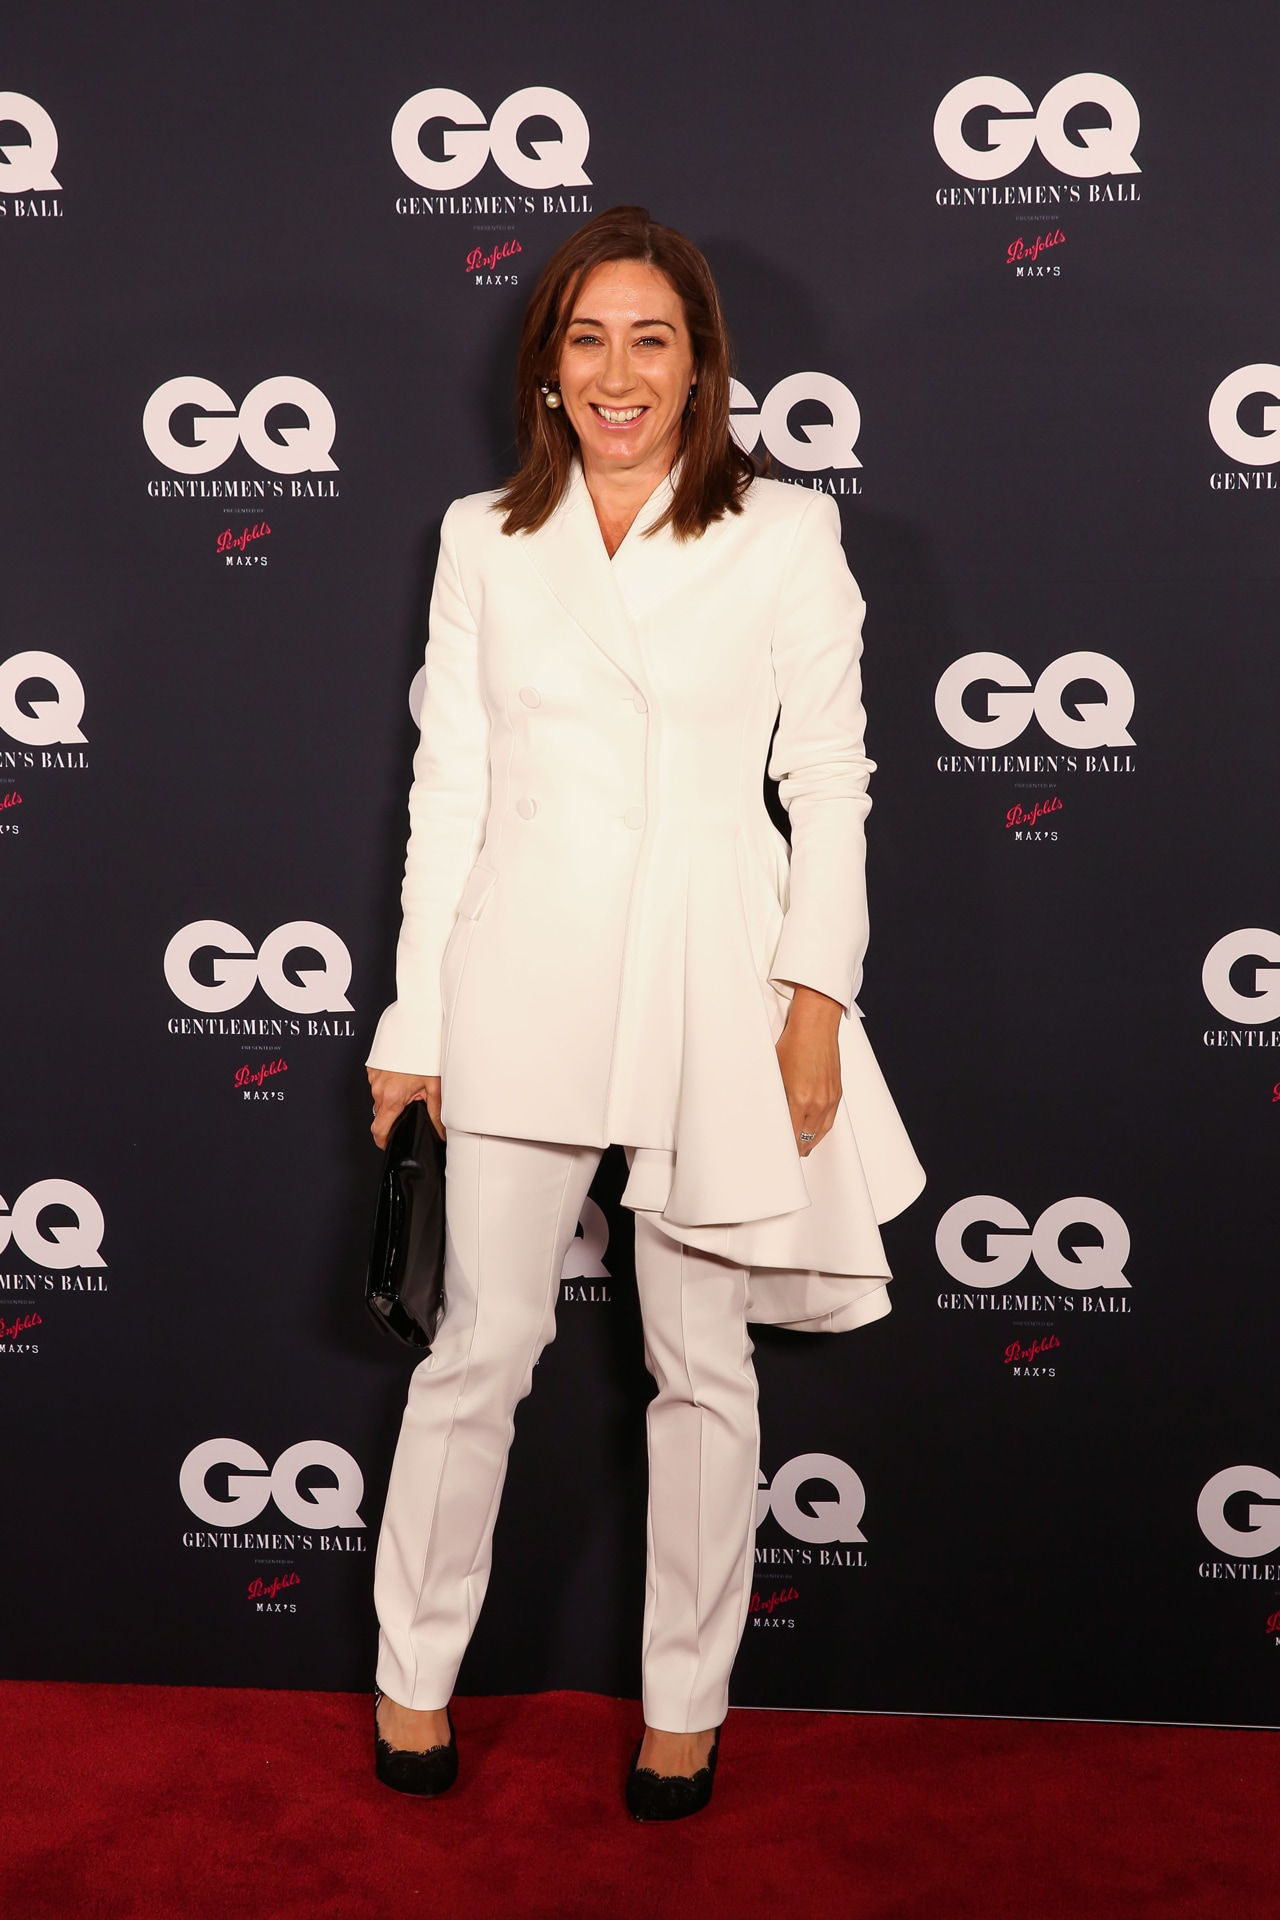 Vogue editor-in-chief Edwina McCann attends the GQ Gentlemen's Ball. Image credit: Supplied